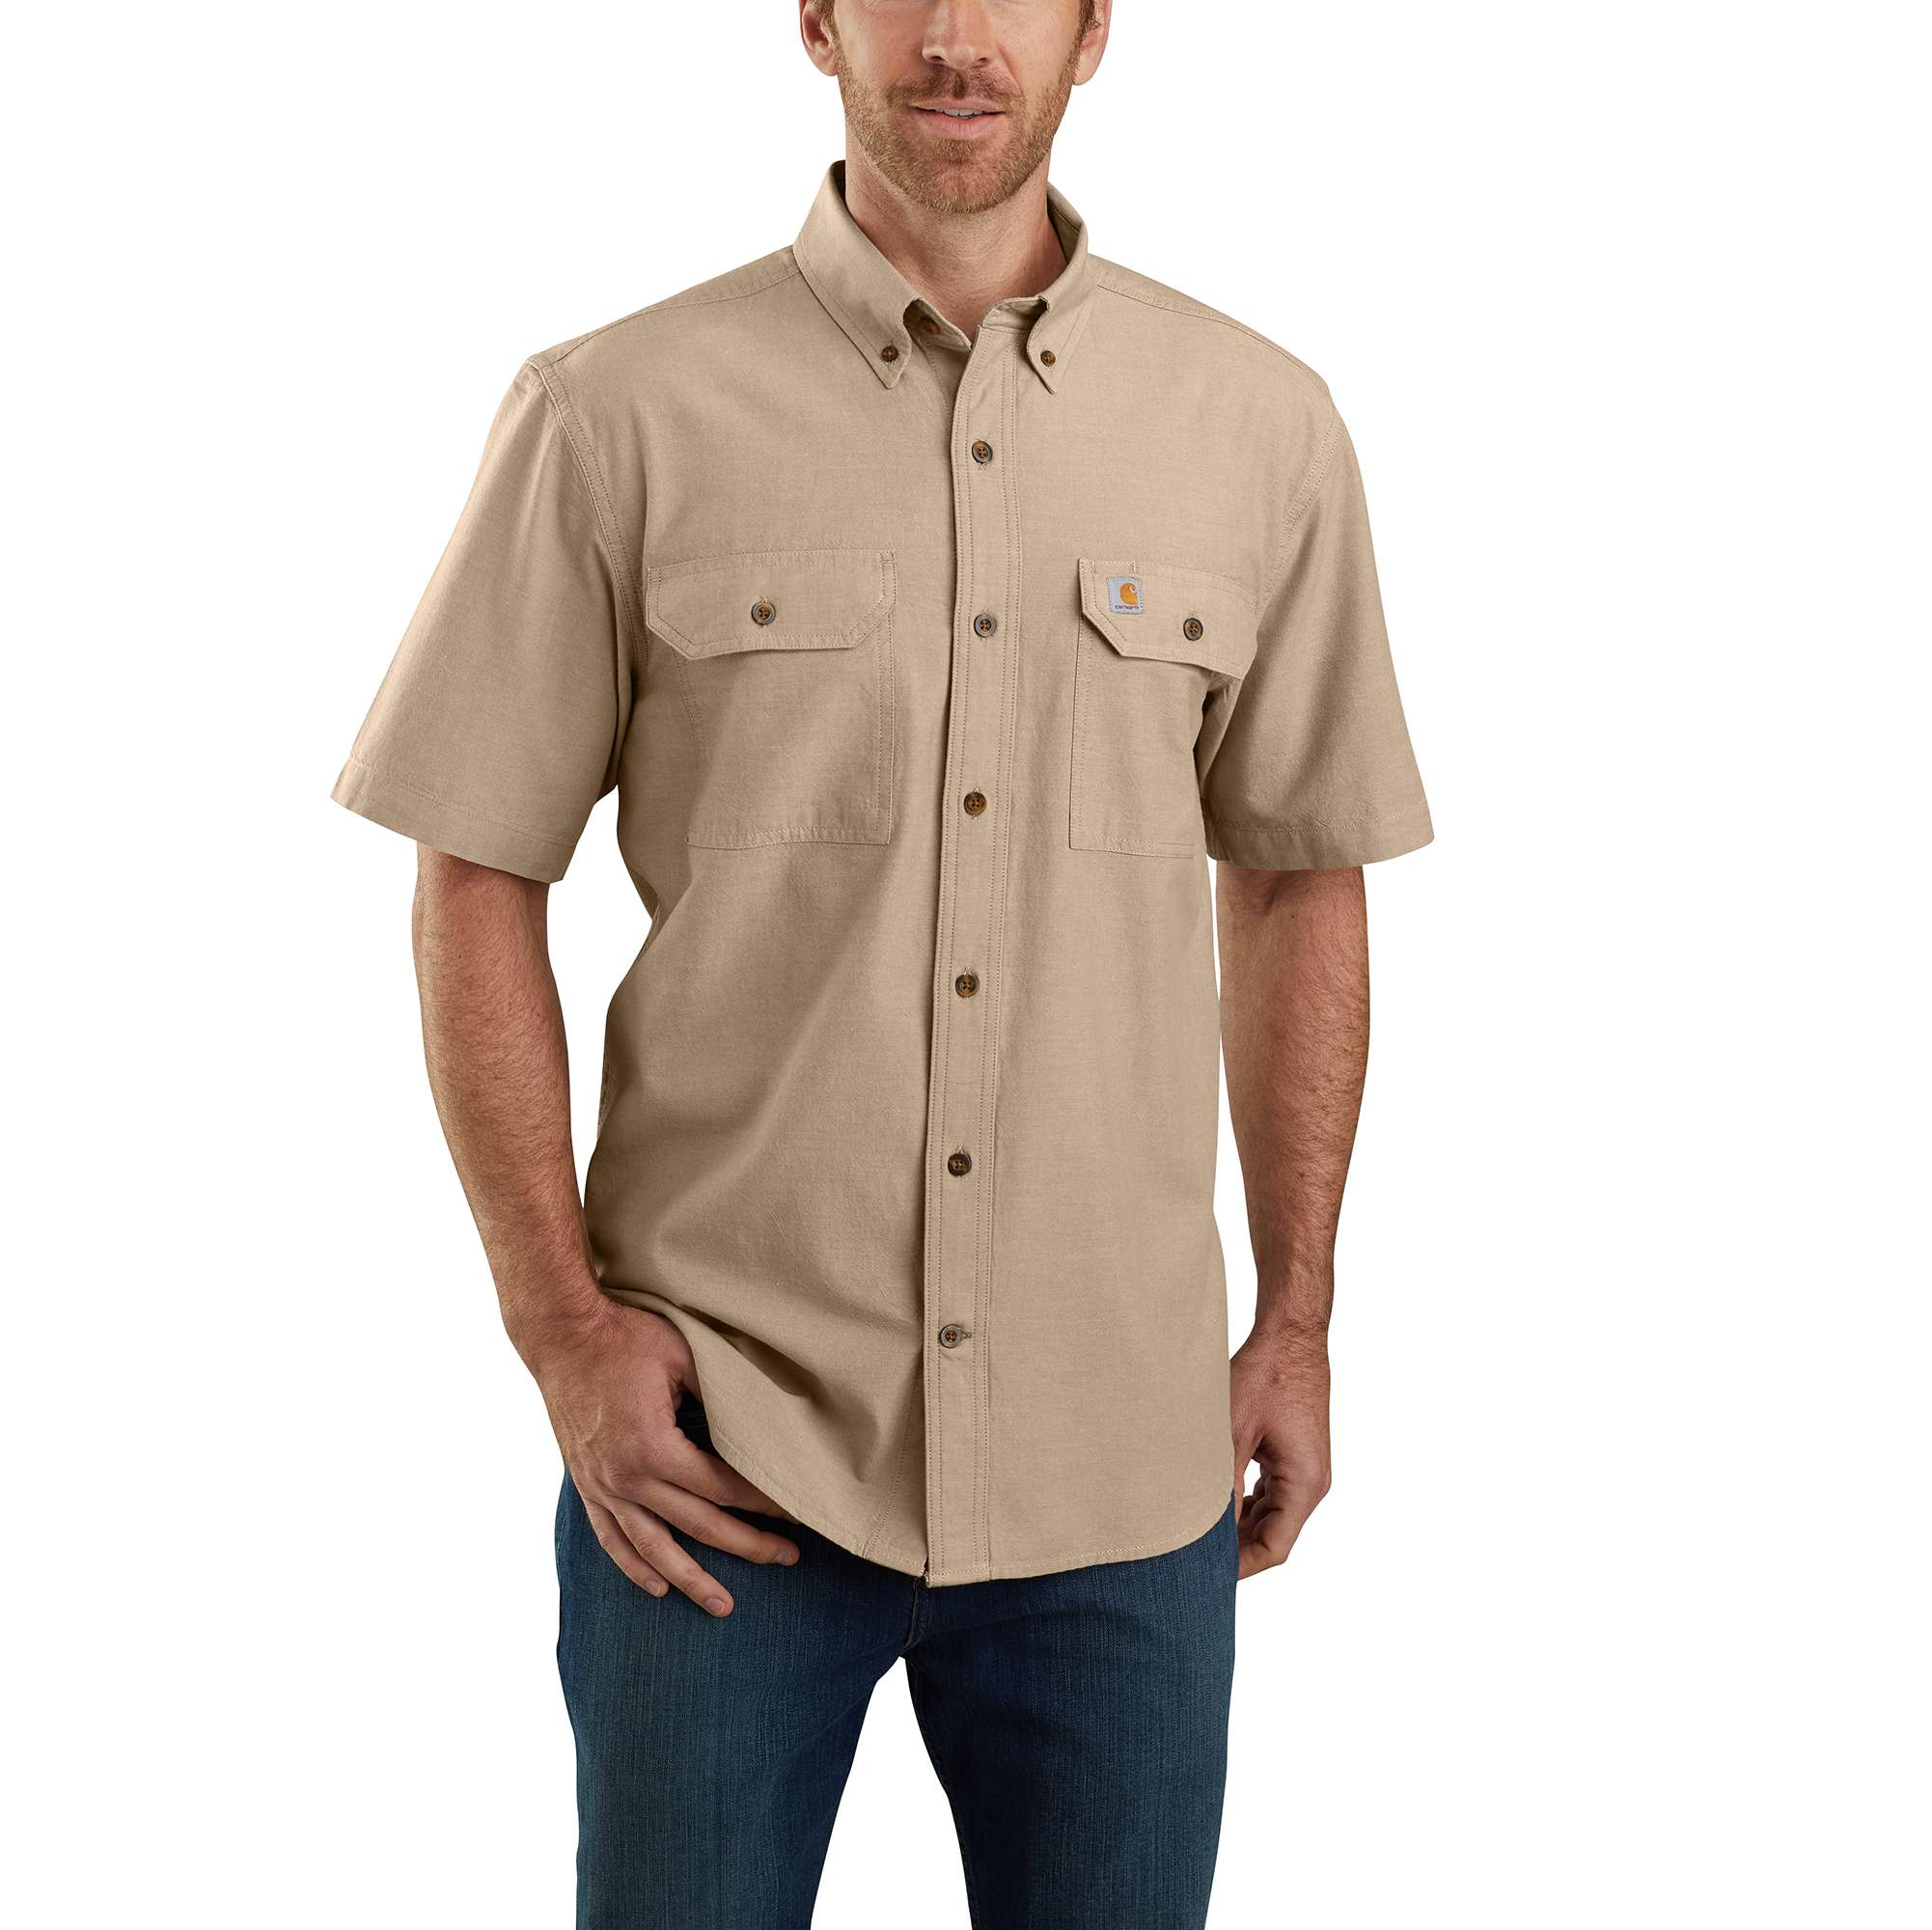 Original Fit Midweight Short-Sleeve Button-Front Shirt